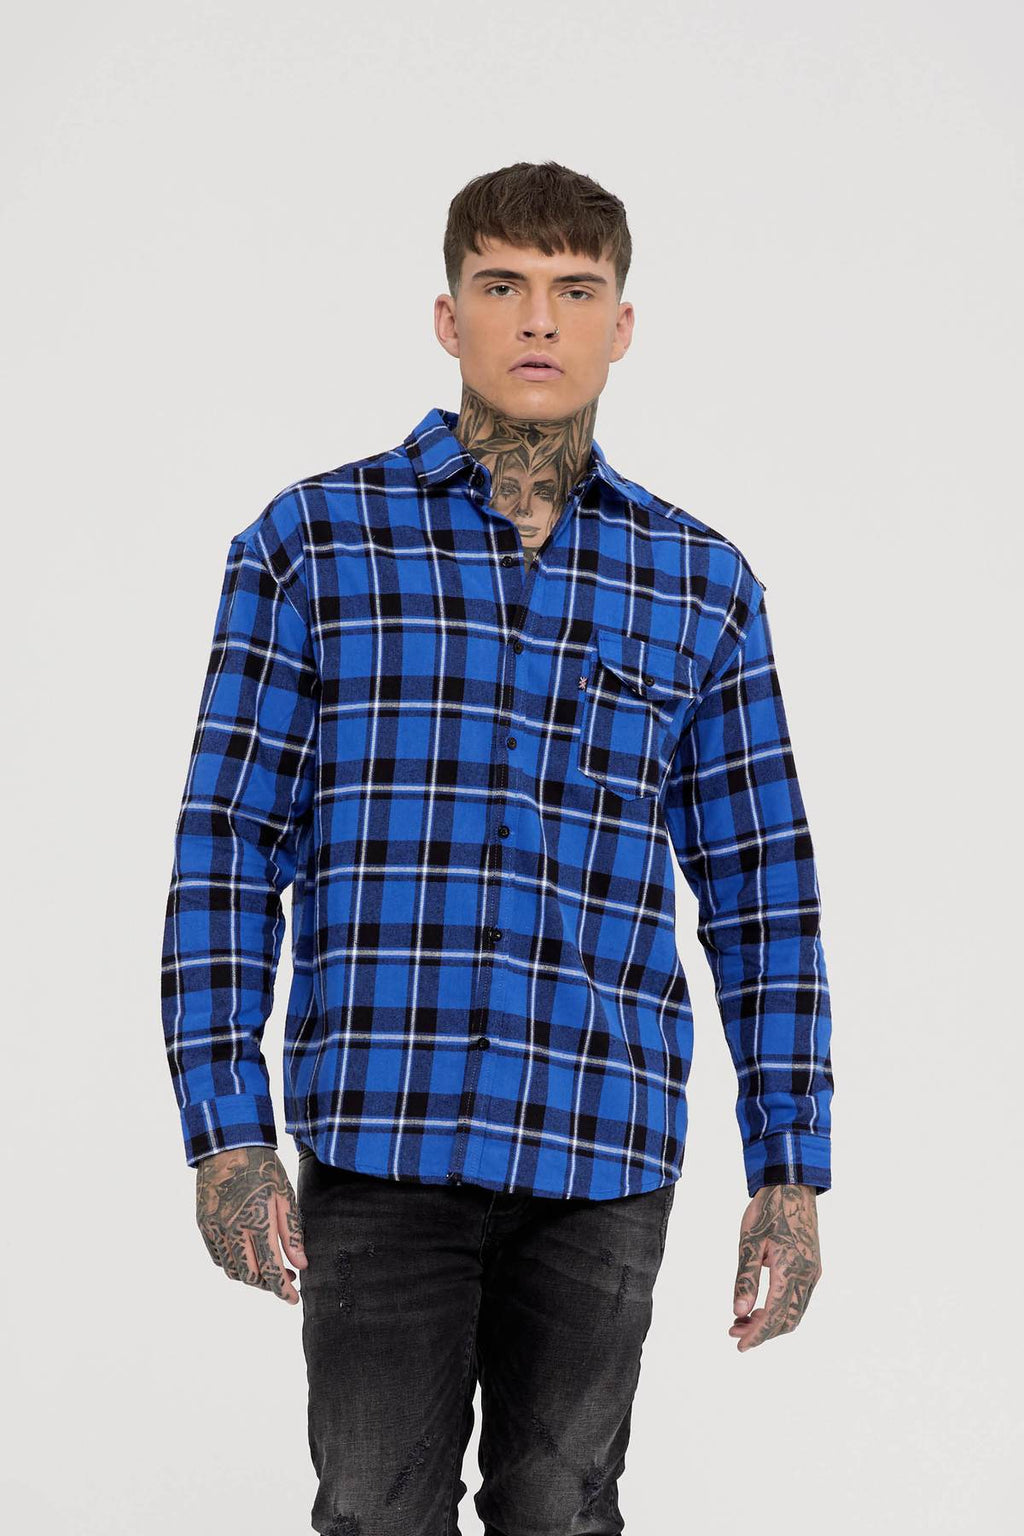 Oversized Blue Check Shirt available in United States, Find GFN at Fresh Clothing DC Store located in Washington DC, Dupont Circle. Buy online. Blue Fashion Shirts for Men, casual fashion and street fashion.